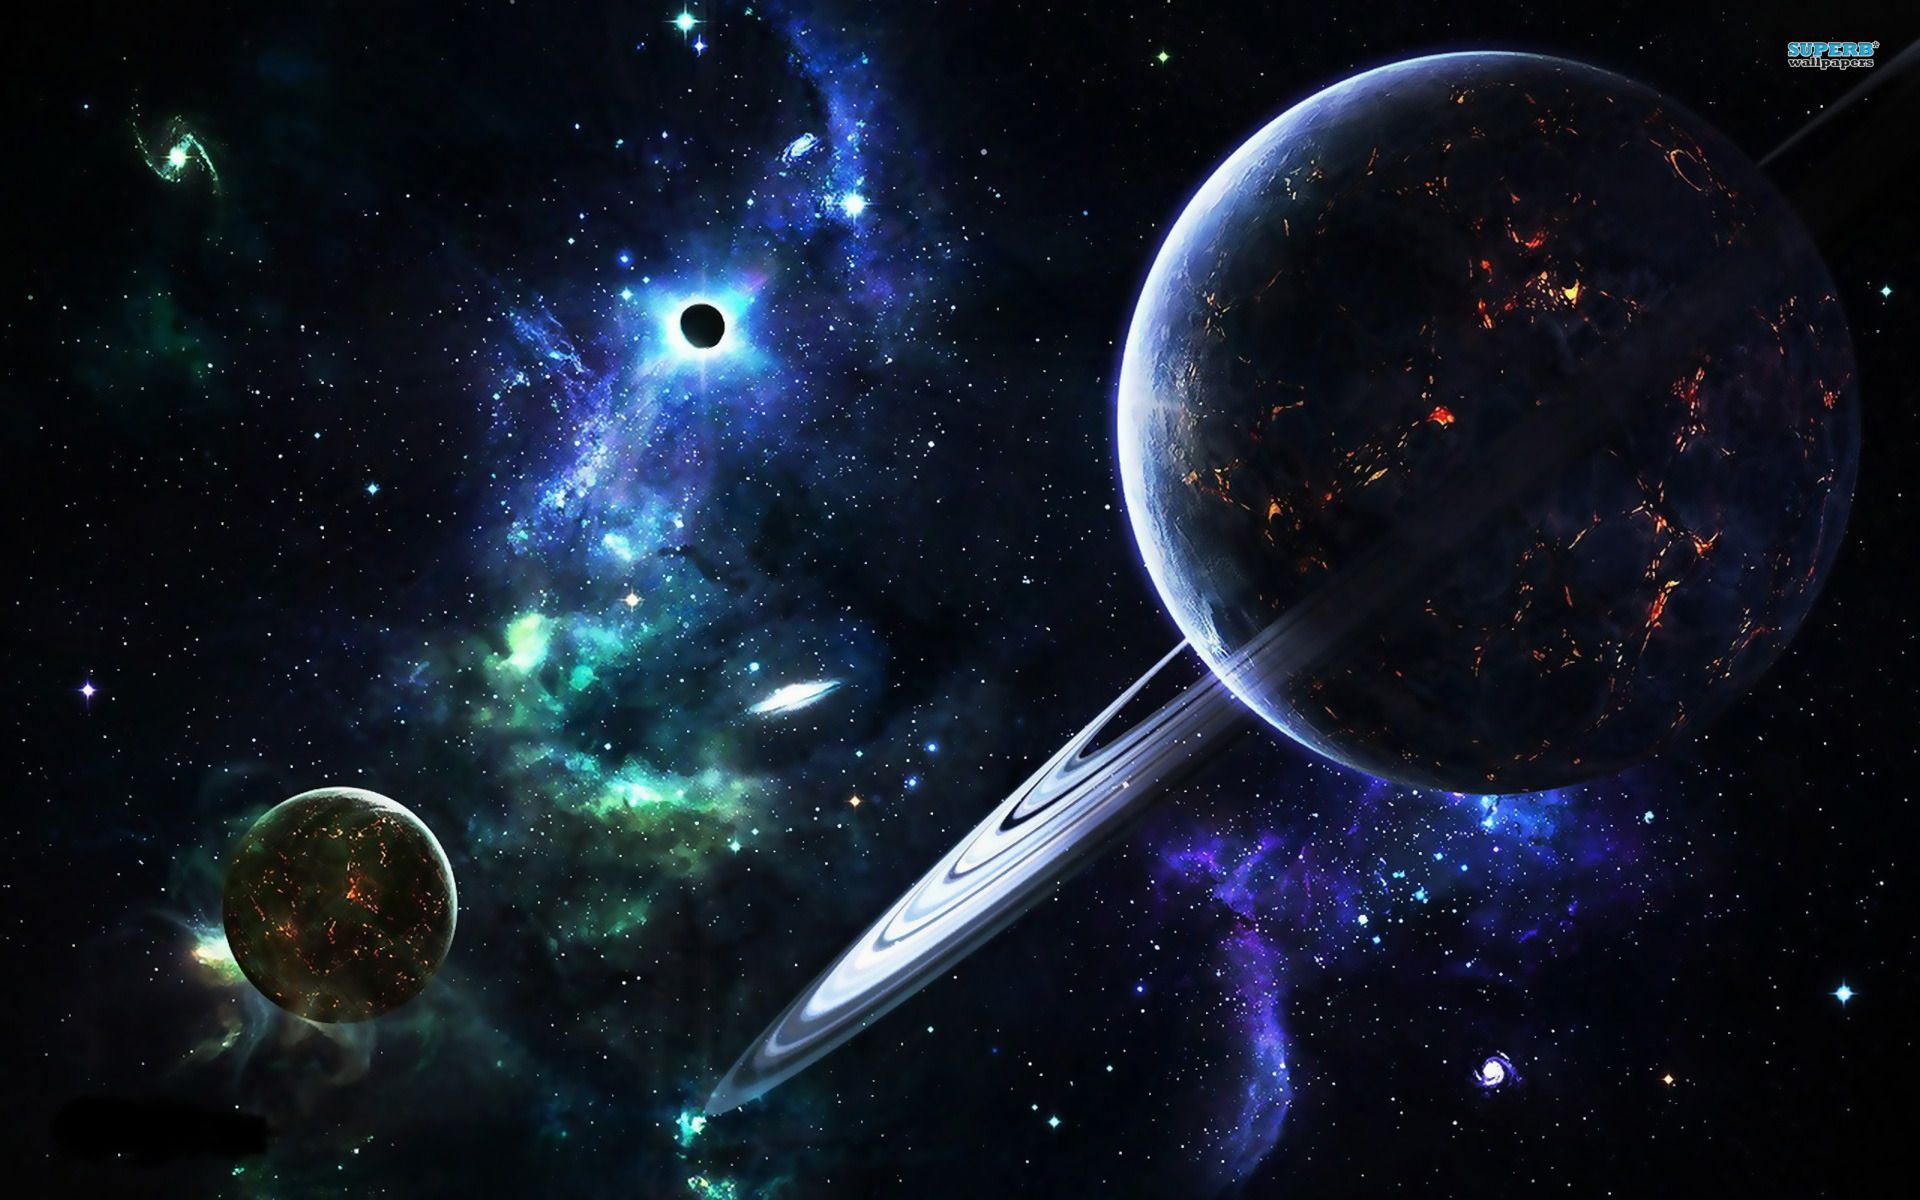 NASA planet discovery: Kepler space telescope finds 1,284 new ...